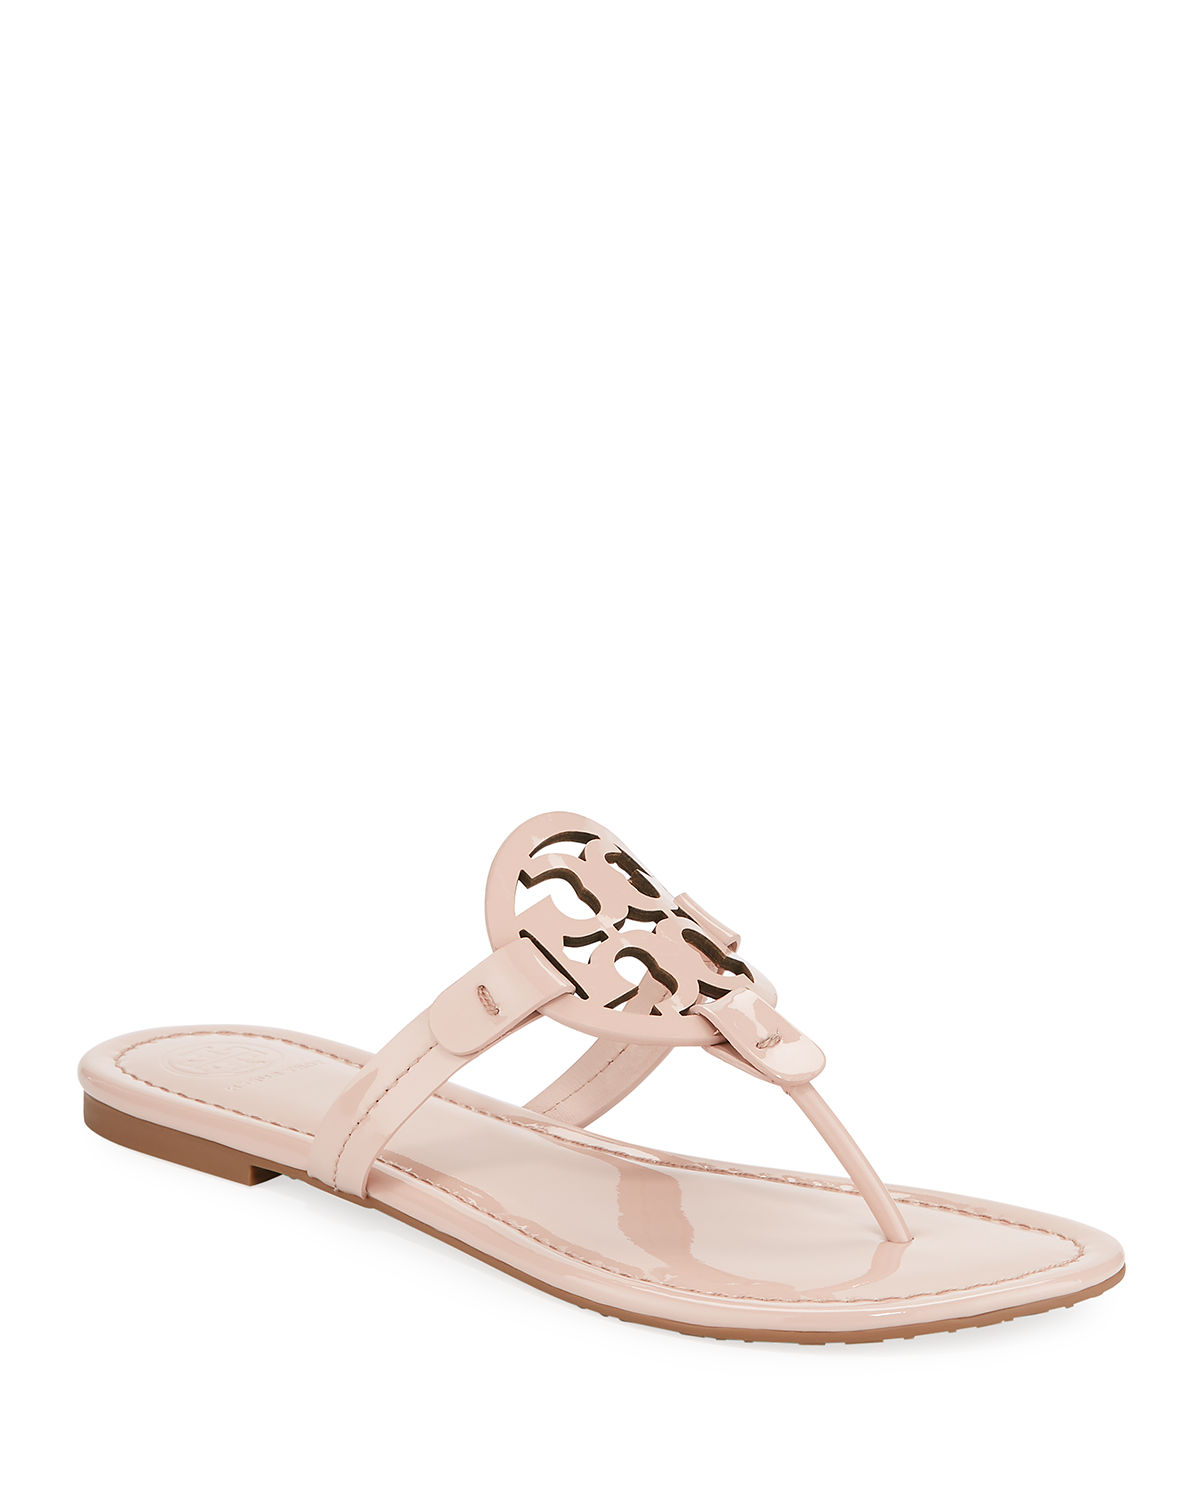 853520f93095dc Tory Burch Miller Medallion Patent Leather Flat Thong Sandals ...